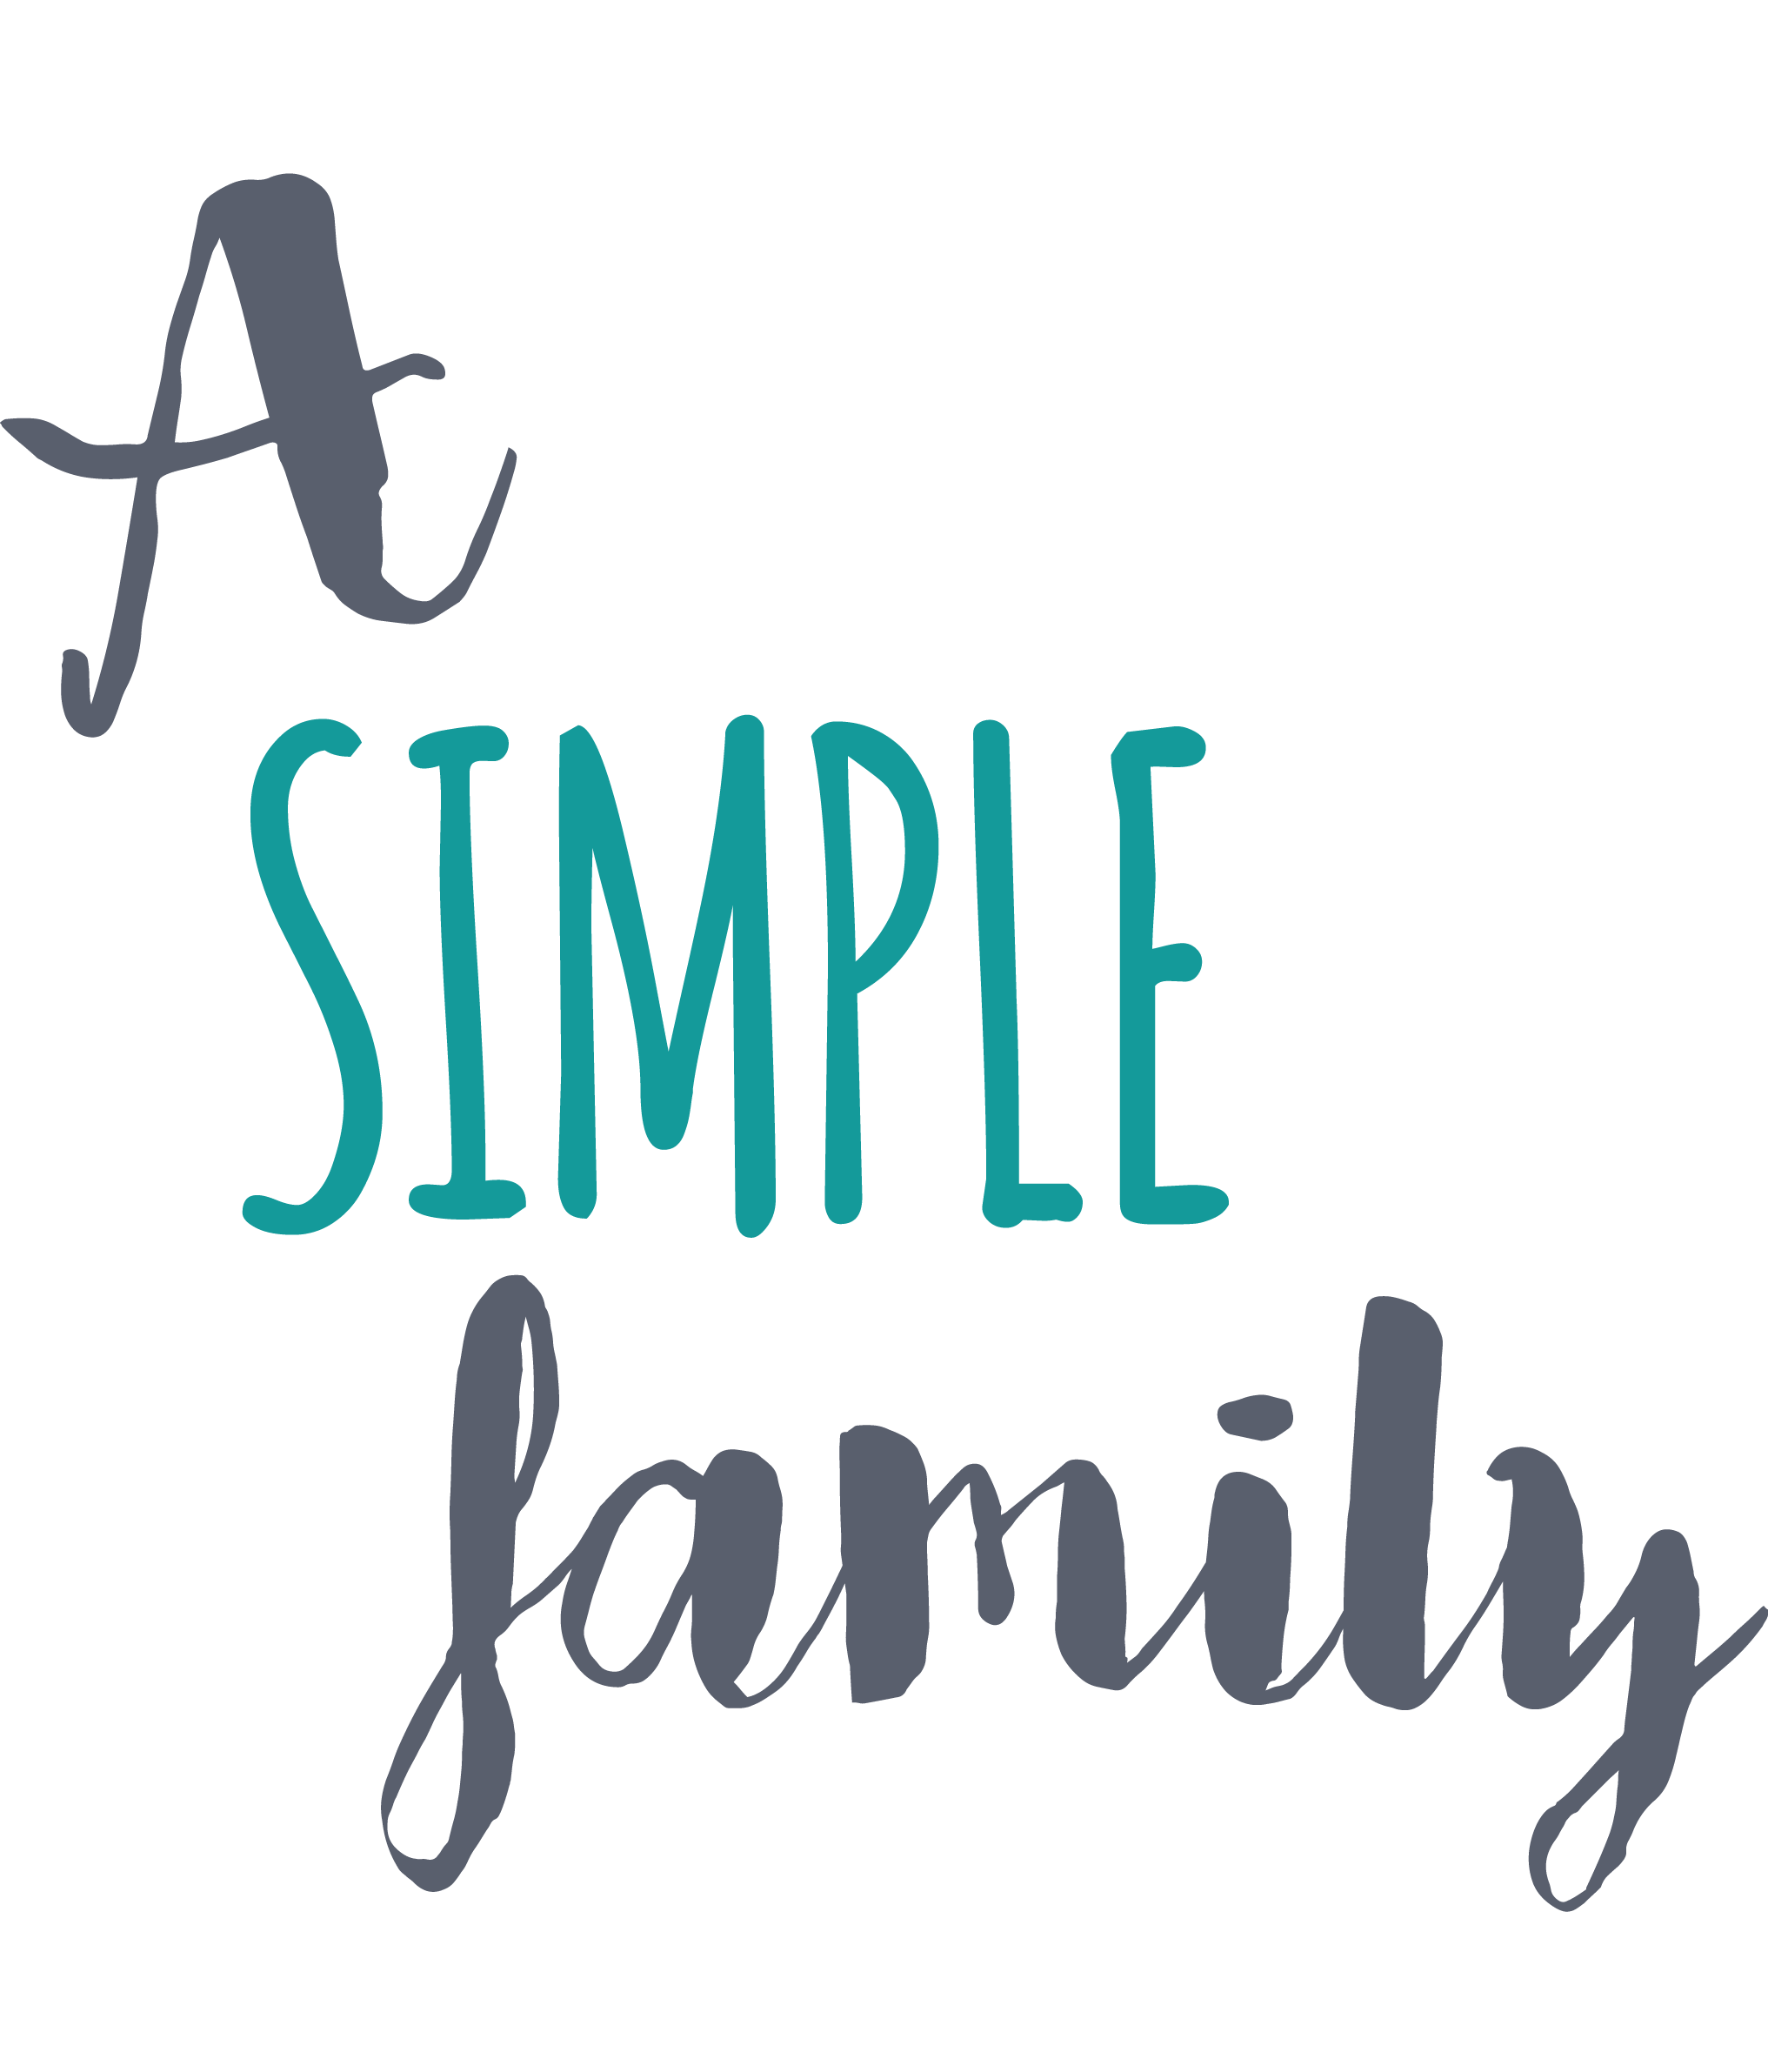 A simple family Logo